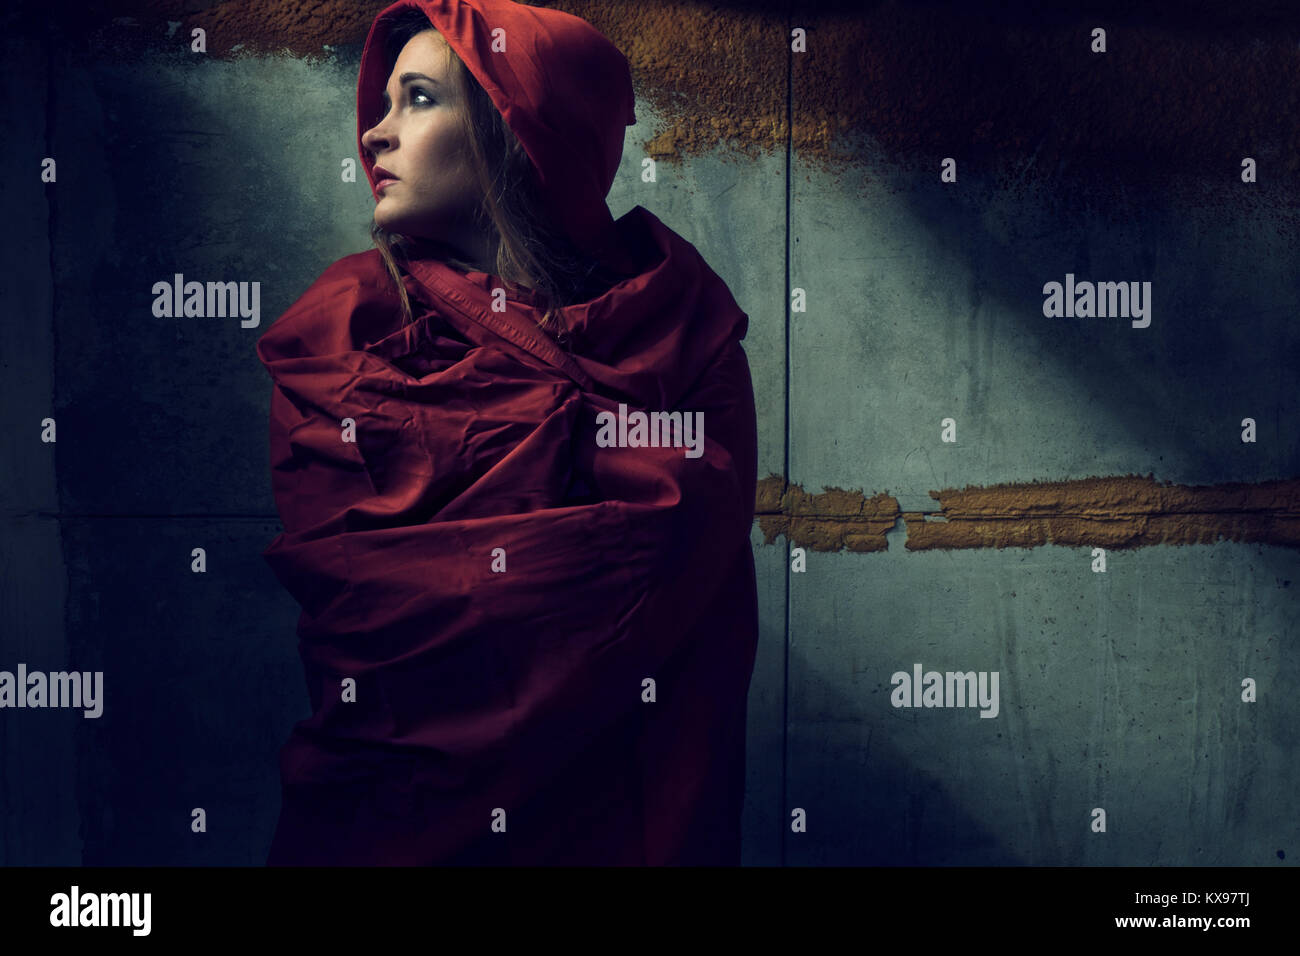 Young woman wrapped in red cape and hood - Stock Image